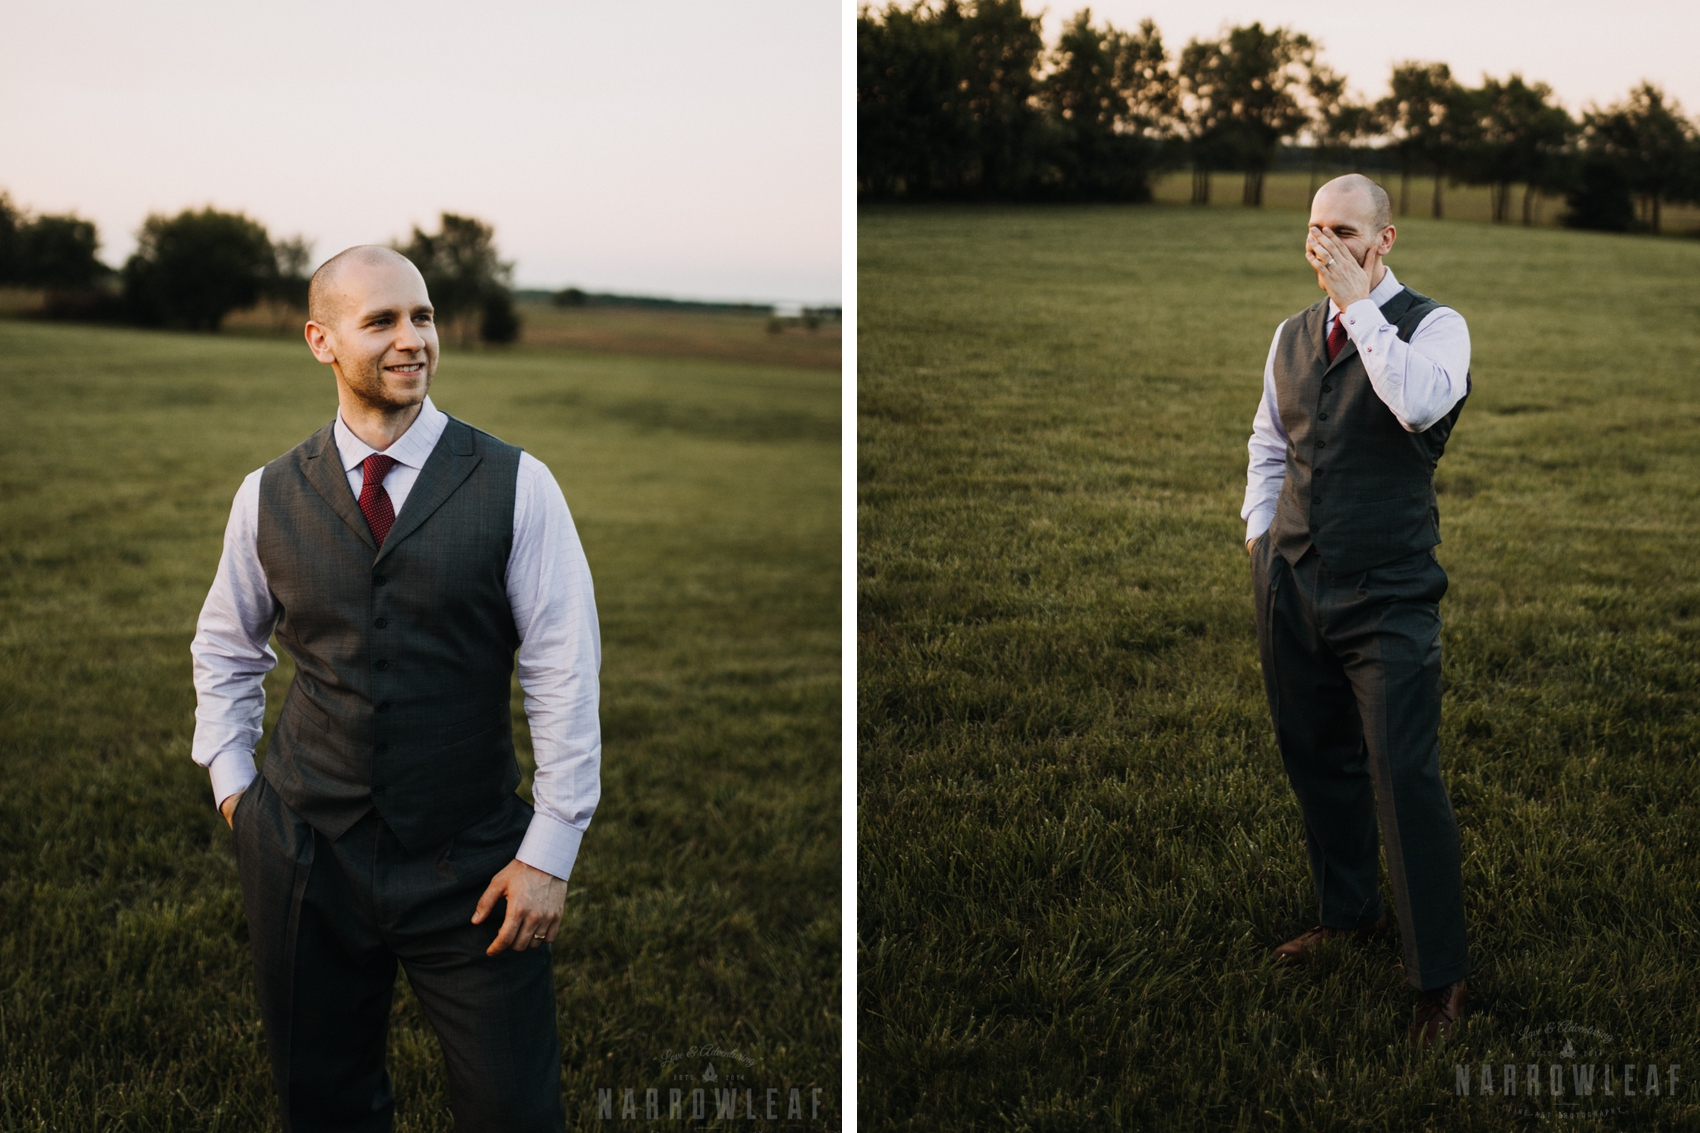 moody-sunset-bride-groom-wedding-photos-at-rustys-hitchin-post-new-richmond-wi033-034.jpg